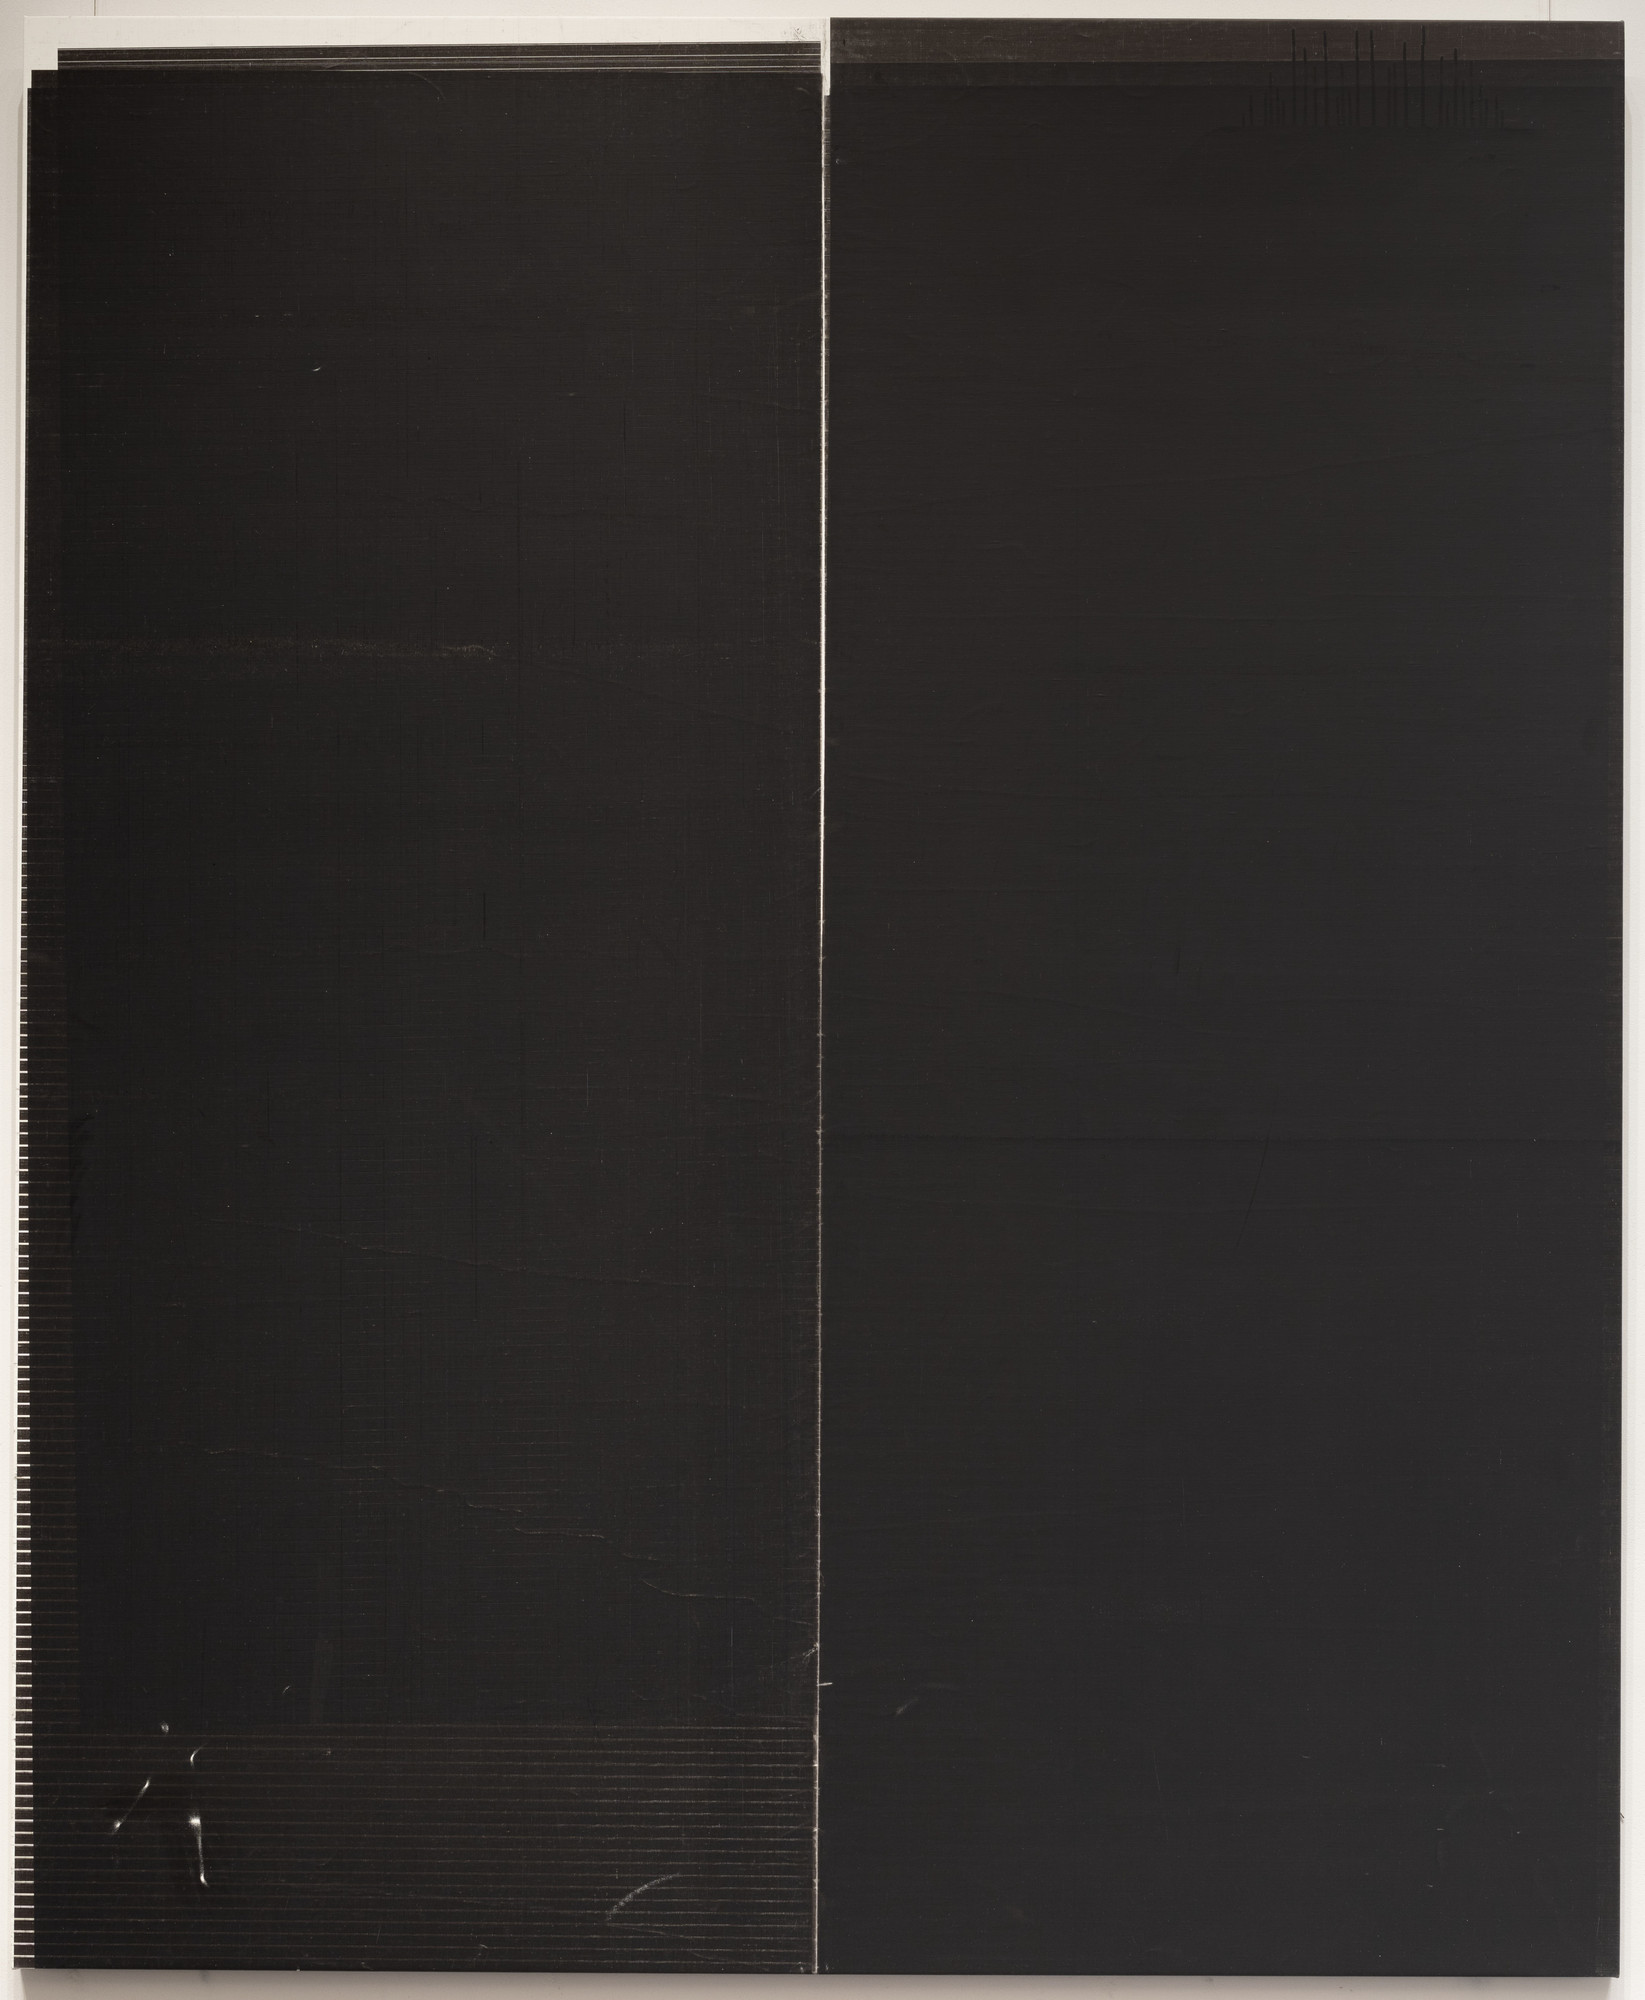 Wade Guyton. Untitled. 2008